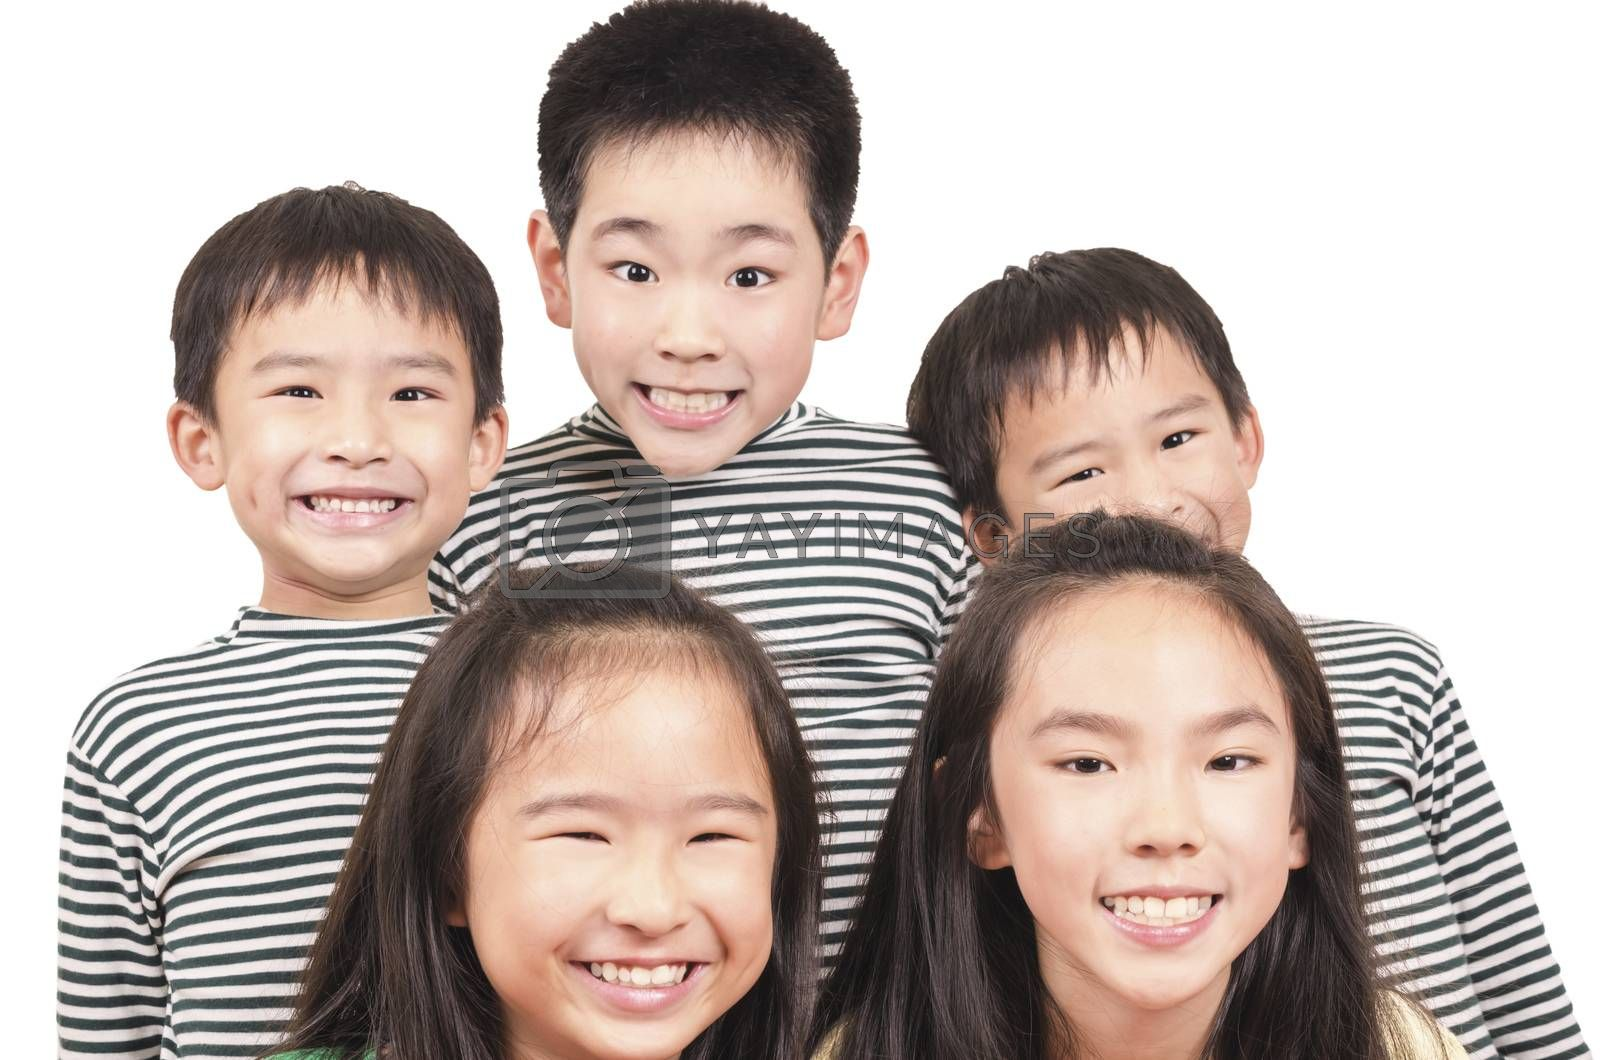 Royalty free image of Group of happy kids by FrankyLiu